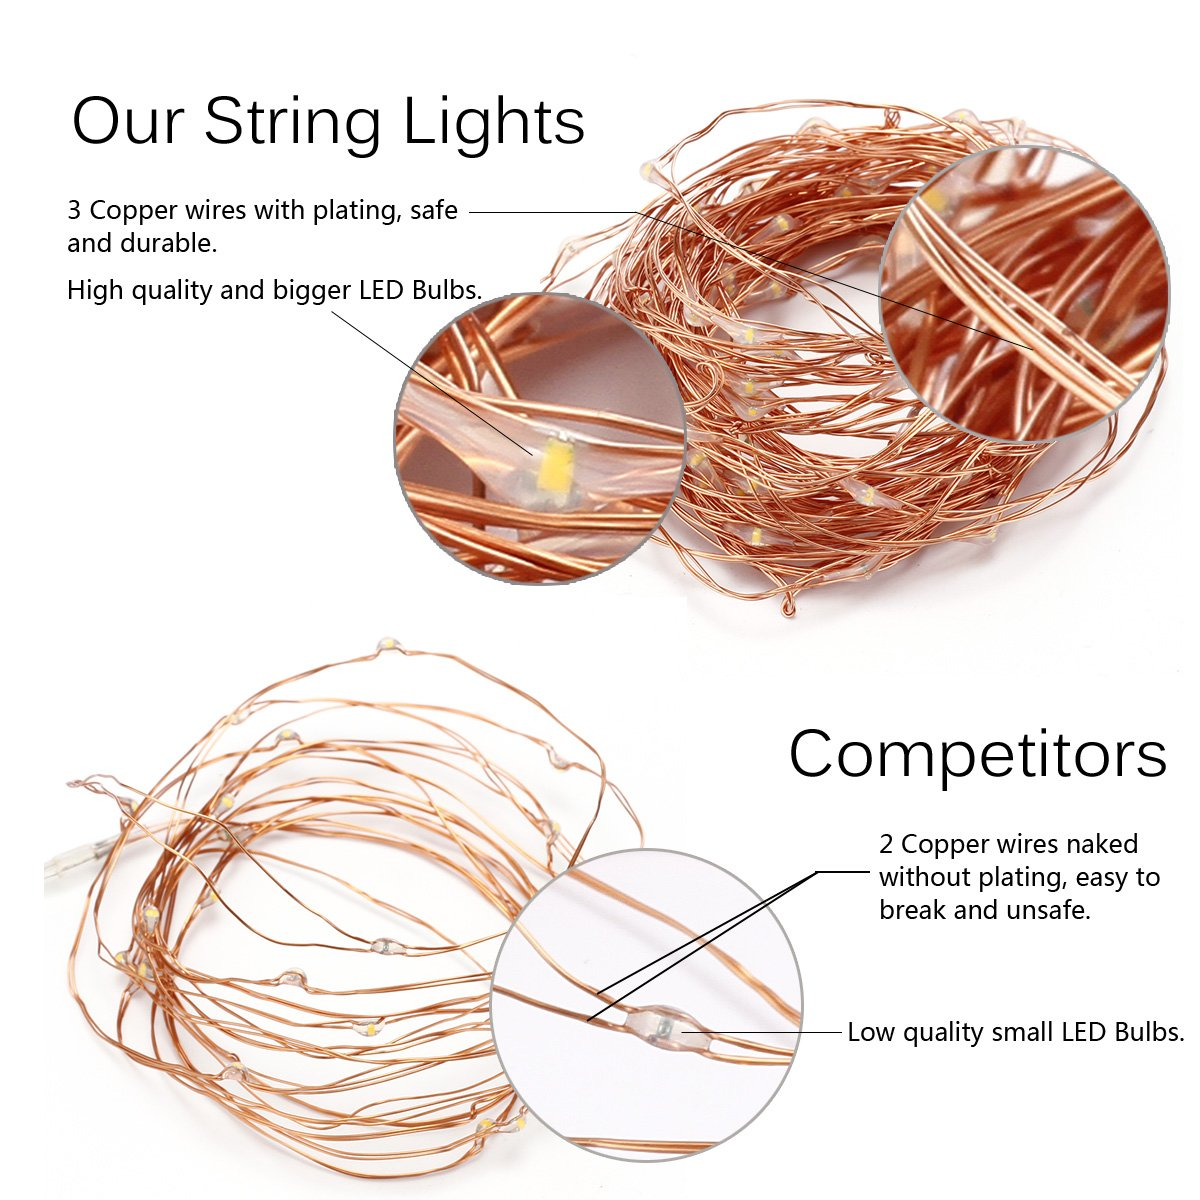 String lights bedroom tiny bulbs electric - Amazon Com Innotree Fairy Lights Usb Plug In 33ft 100 Led Warm White Waterproof Starry String Lights For Bedroom Indoor Outdoor Decorative Patio